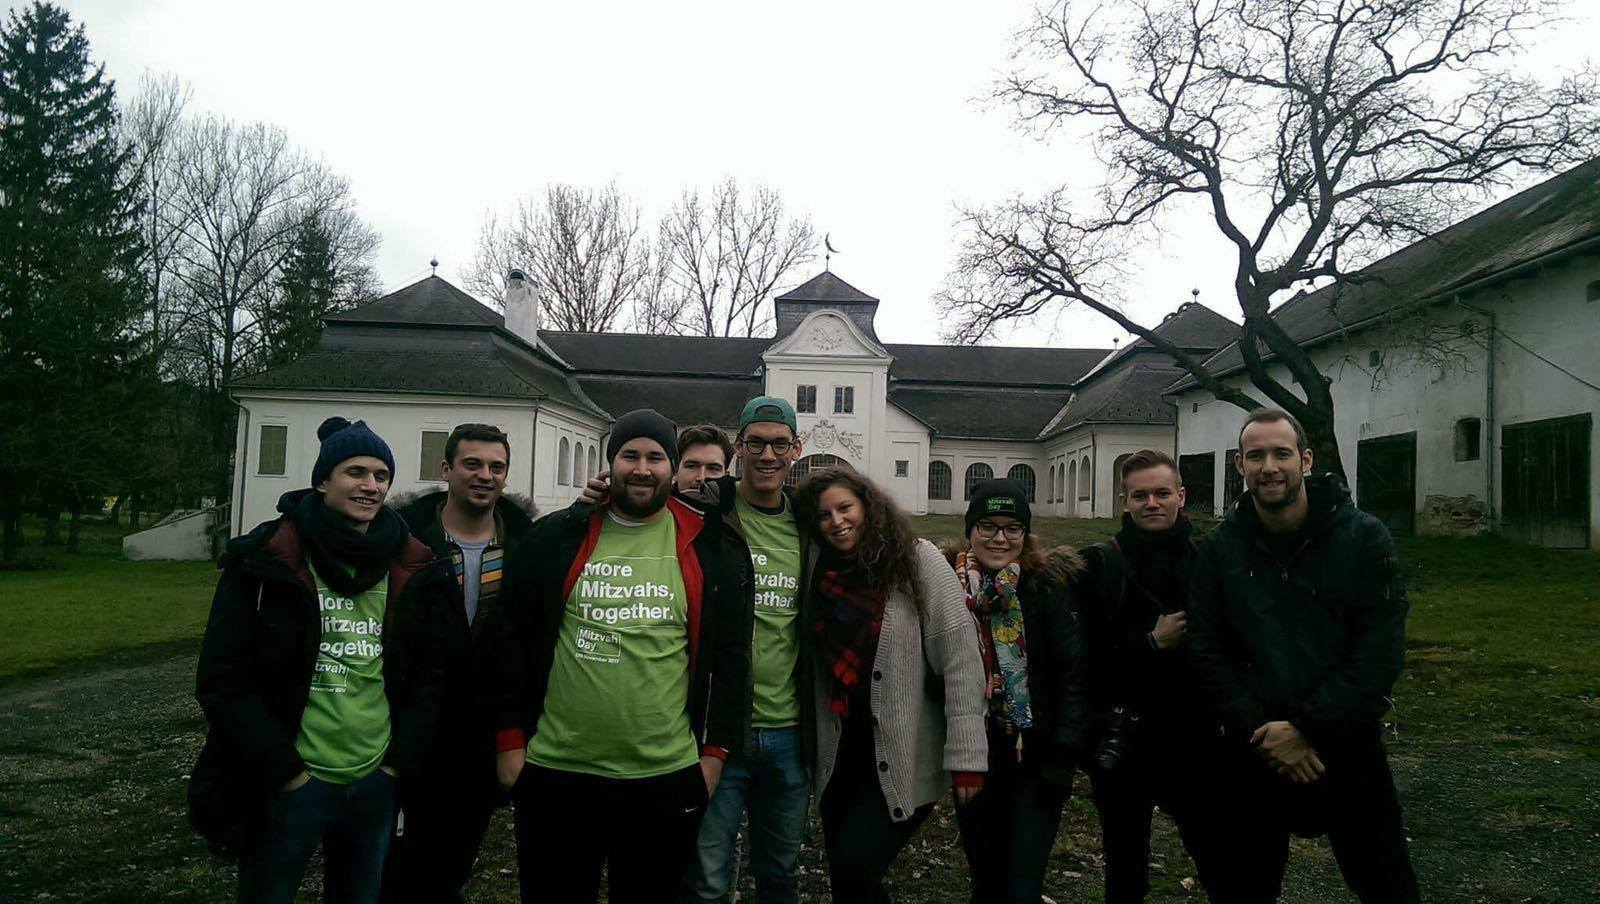 Budapest - Volunteers in Hungary cleaned a garden and delivered toys to an orphanage